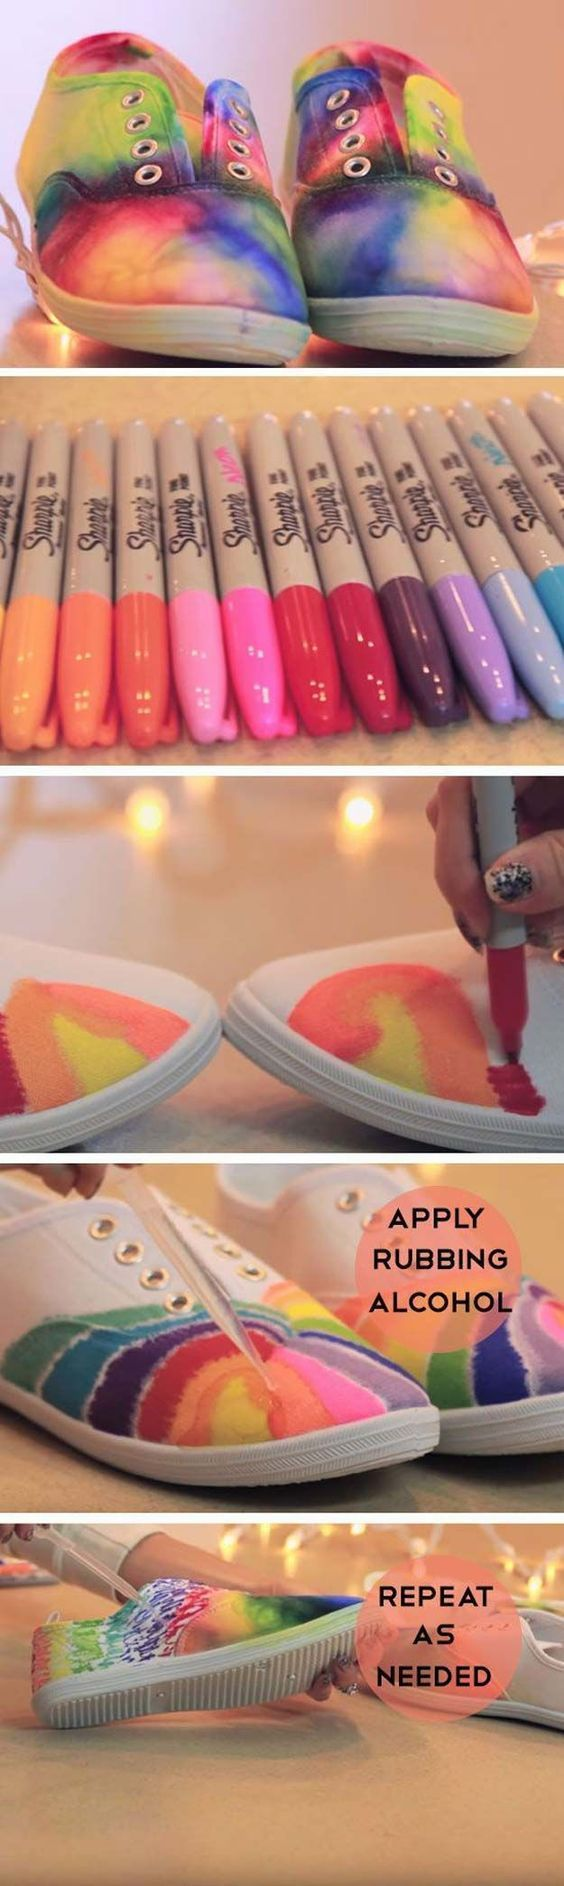 Best DIY Rainbow Crafts Ideas - Rainbow Shoes - Fun DIY Projects With Rainbows Make Cool Room and Wall Decor, Party and Gift Ideas, Clothes, Jewelry and Hair Accessories - Awesome Ideas and Step by Step Tutorials for Teens and Adults, Girls and Tweens diyprojectsfortee...